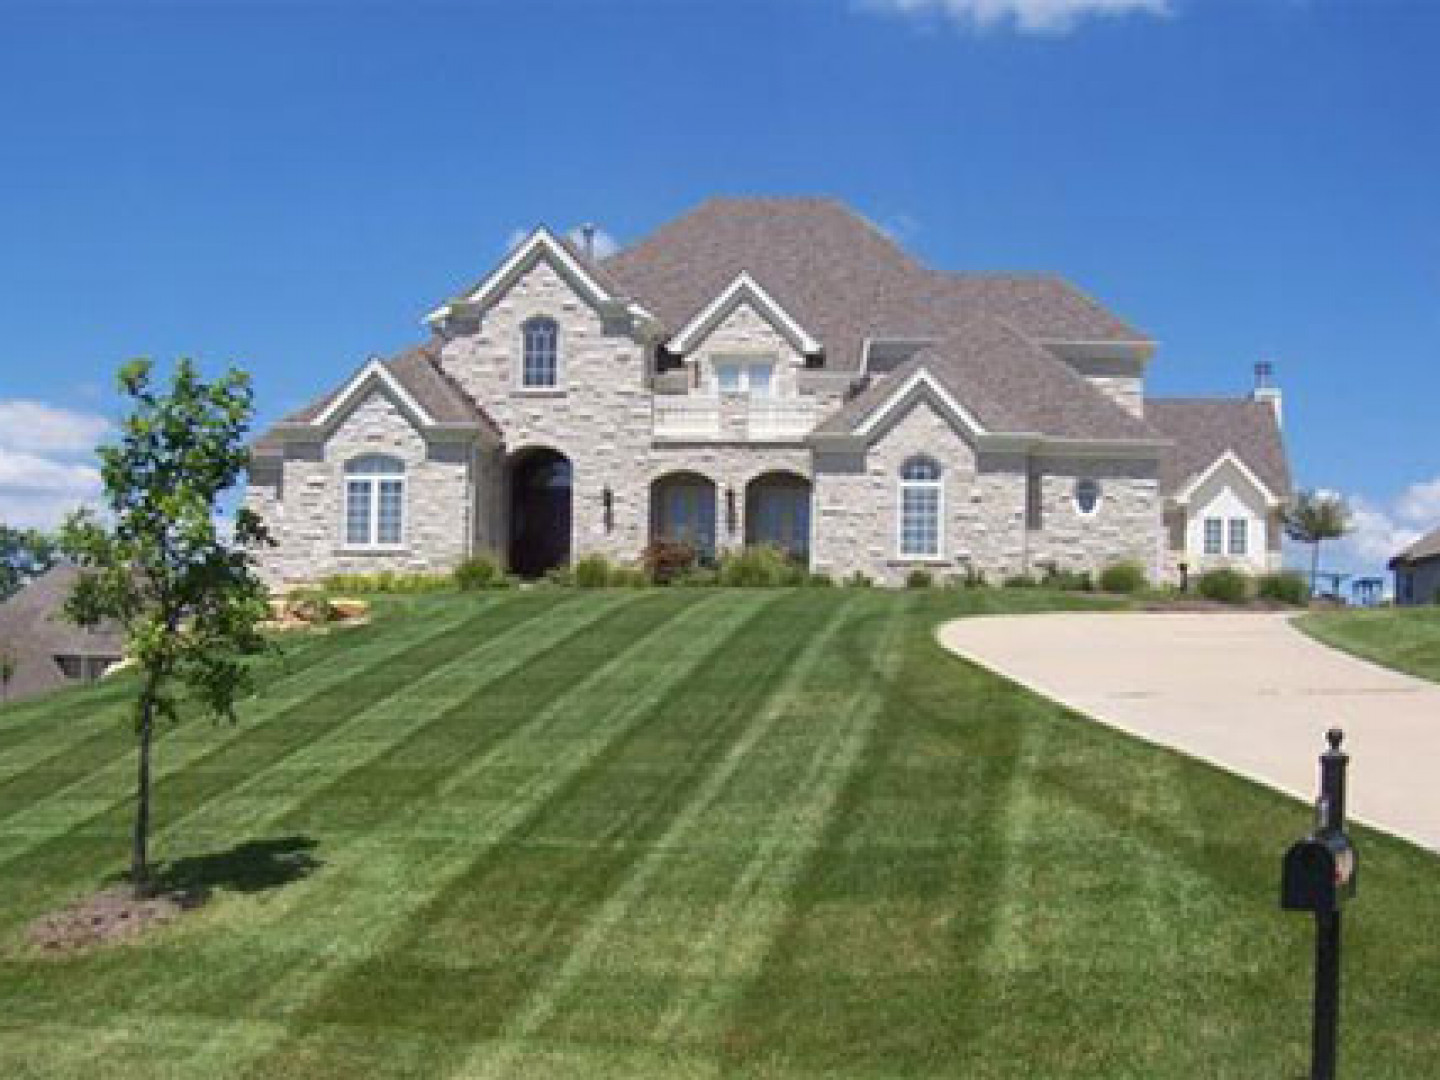 Lawn Mowing Services Richland Battle Creek Kalamazoo Mi